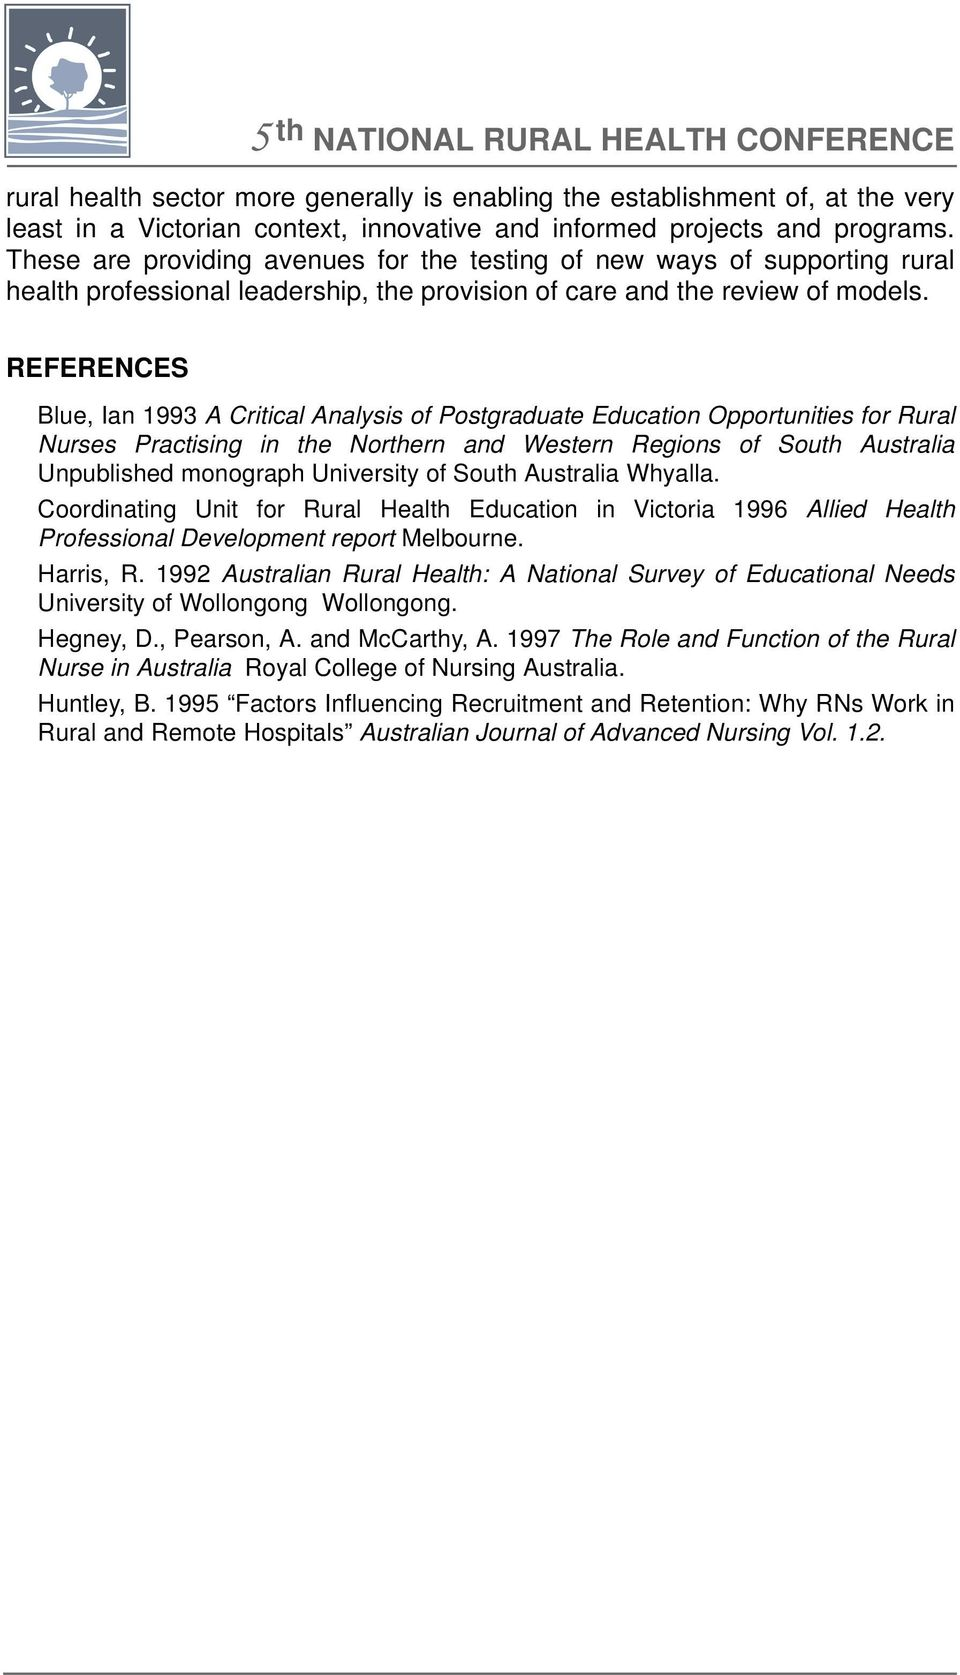 REFERENCES Blue, Ian 1993 A Critical Analysis of Postgraduate Education Opportunities for Rural Nurses Practising in the Northern and Western Regions of South Australia Unpublished monograph